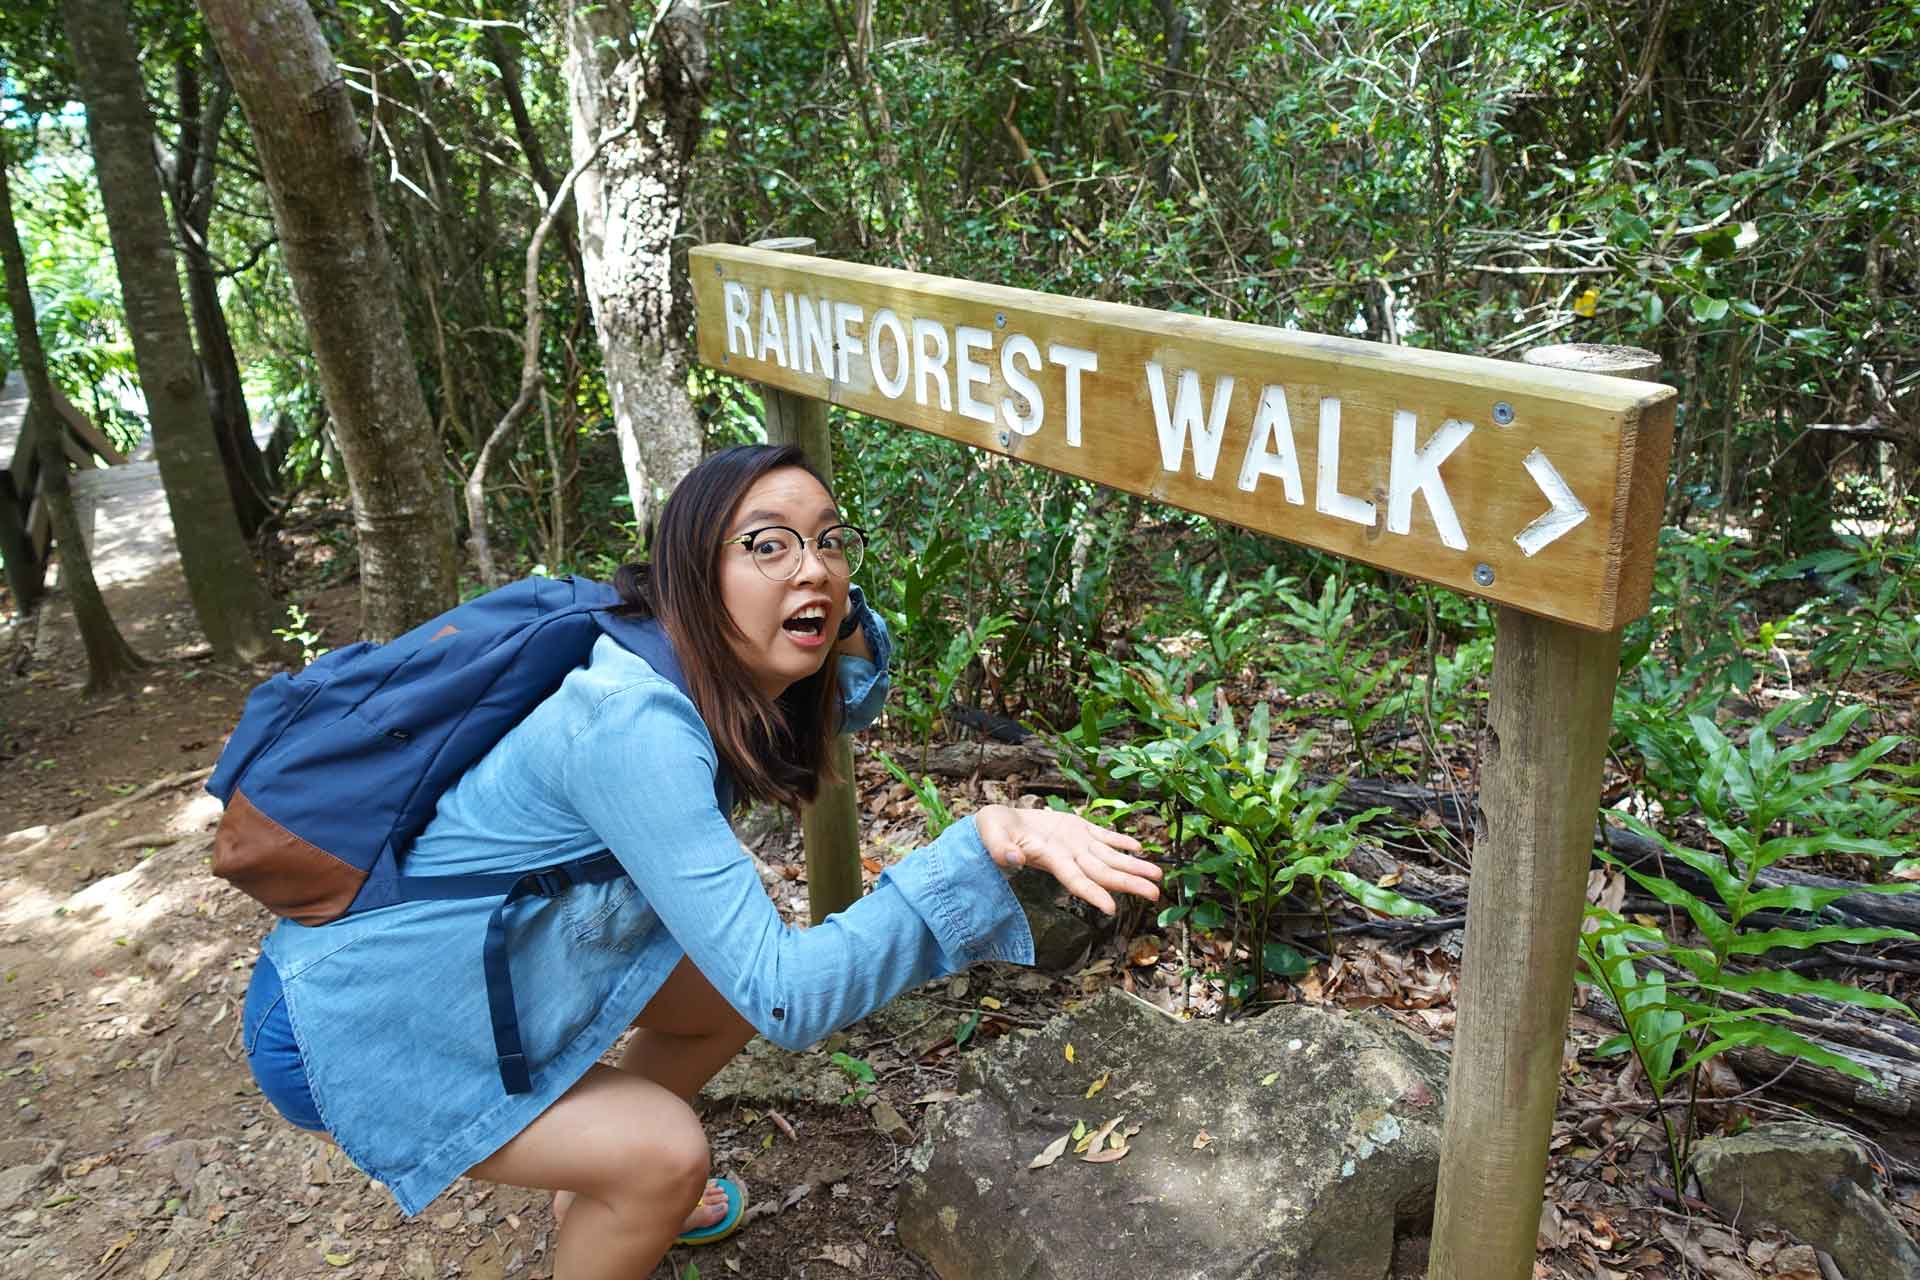 Going on a rainforest walk on Daydream Island